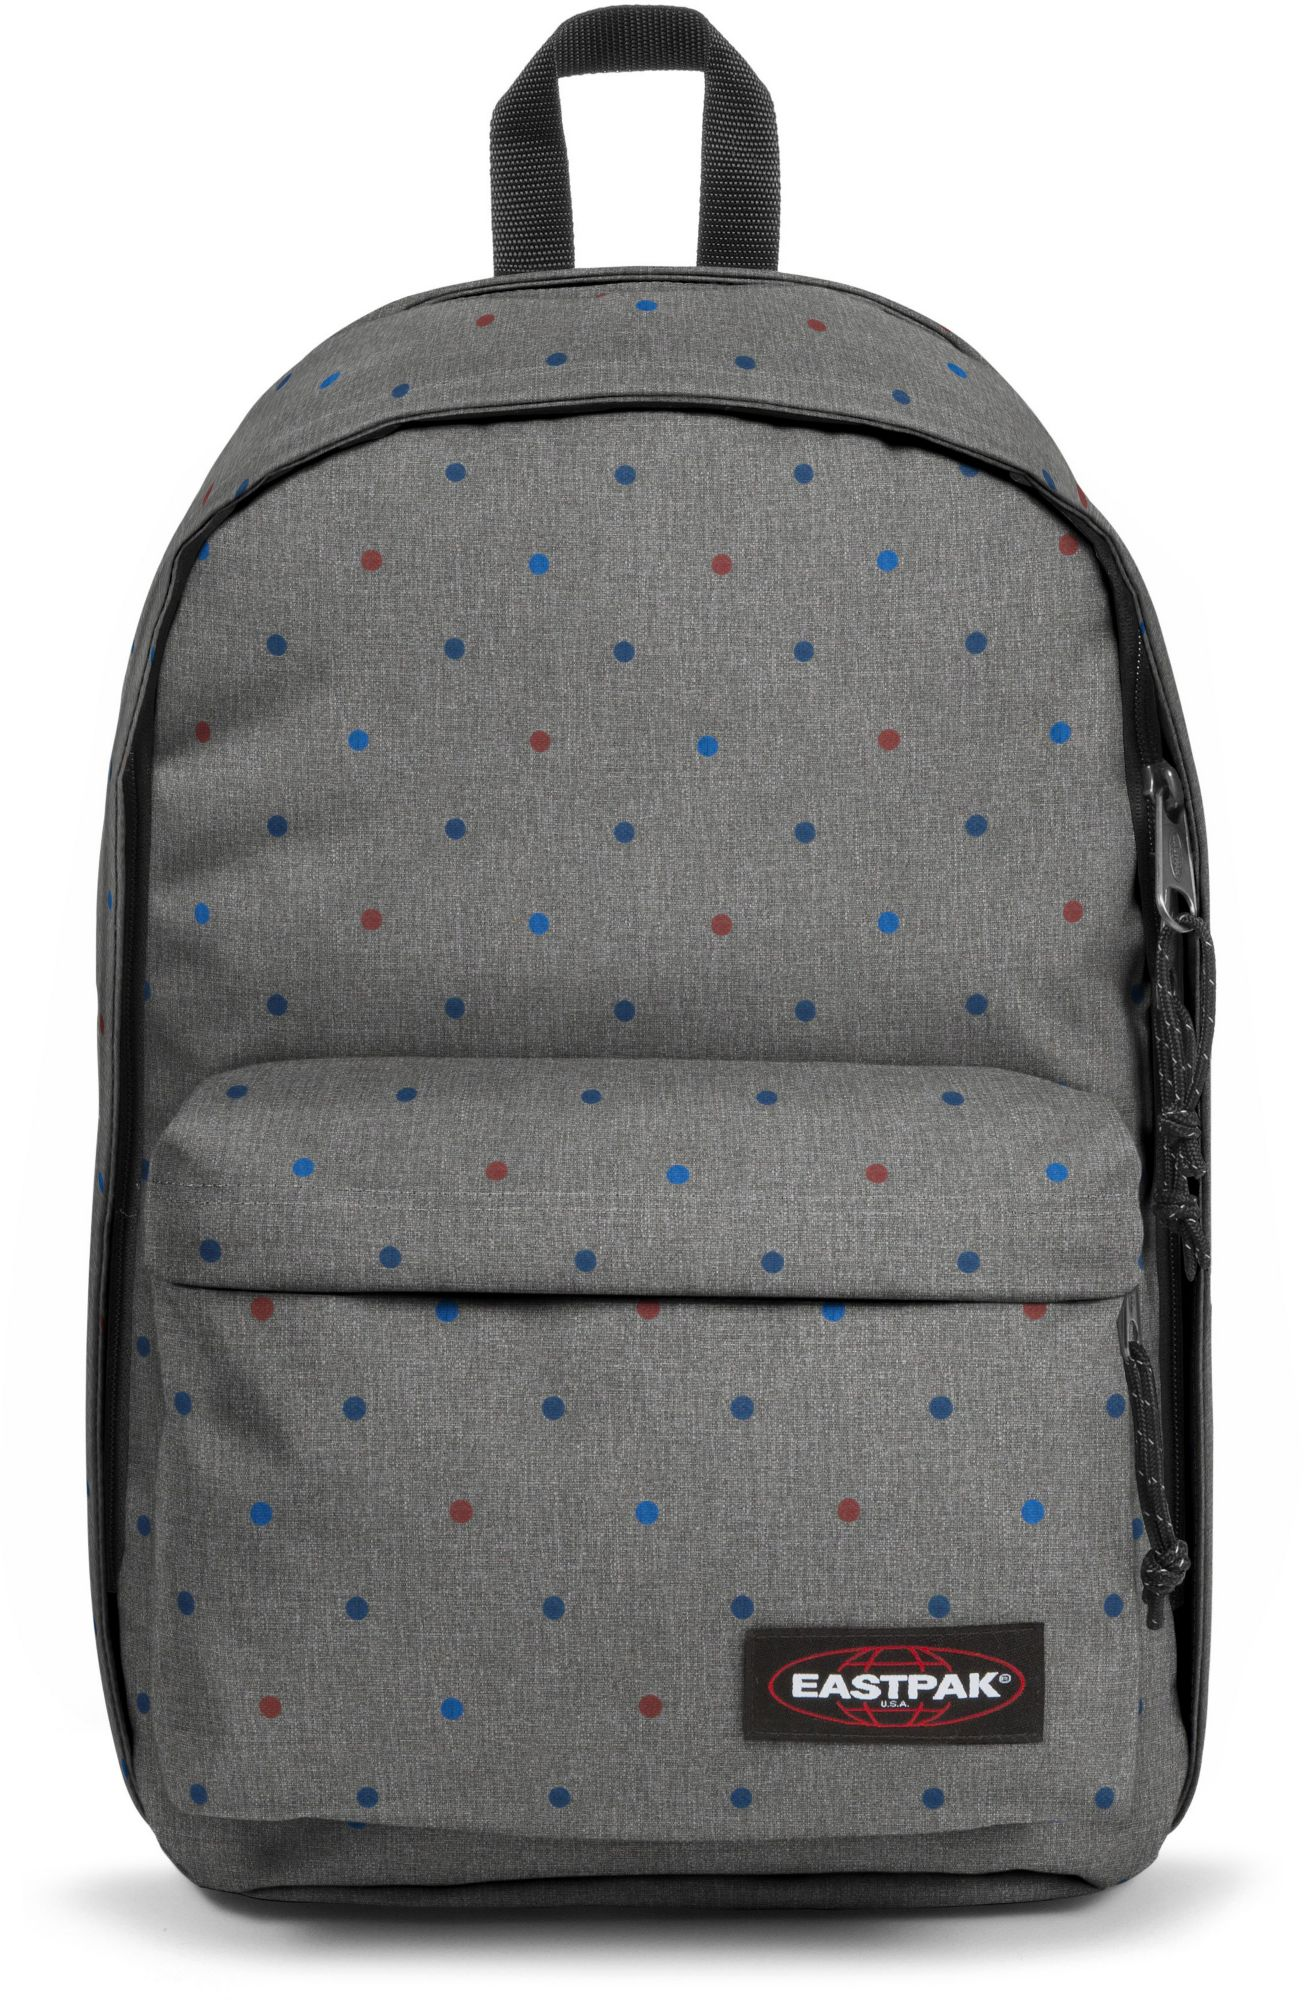 EASTPAK Eastpak Rucksack mit Laptopfach, »BACK TO WORK trio dots«